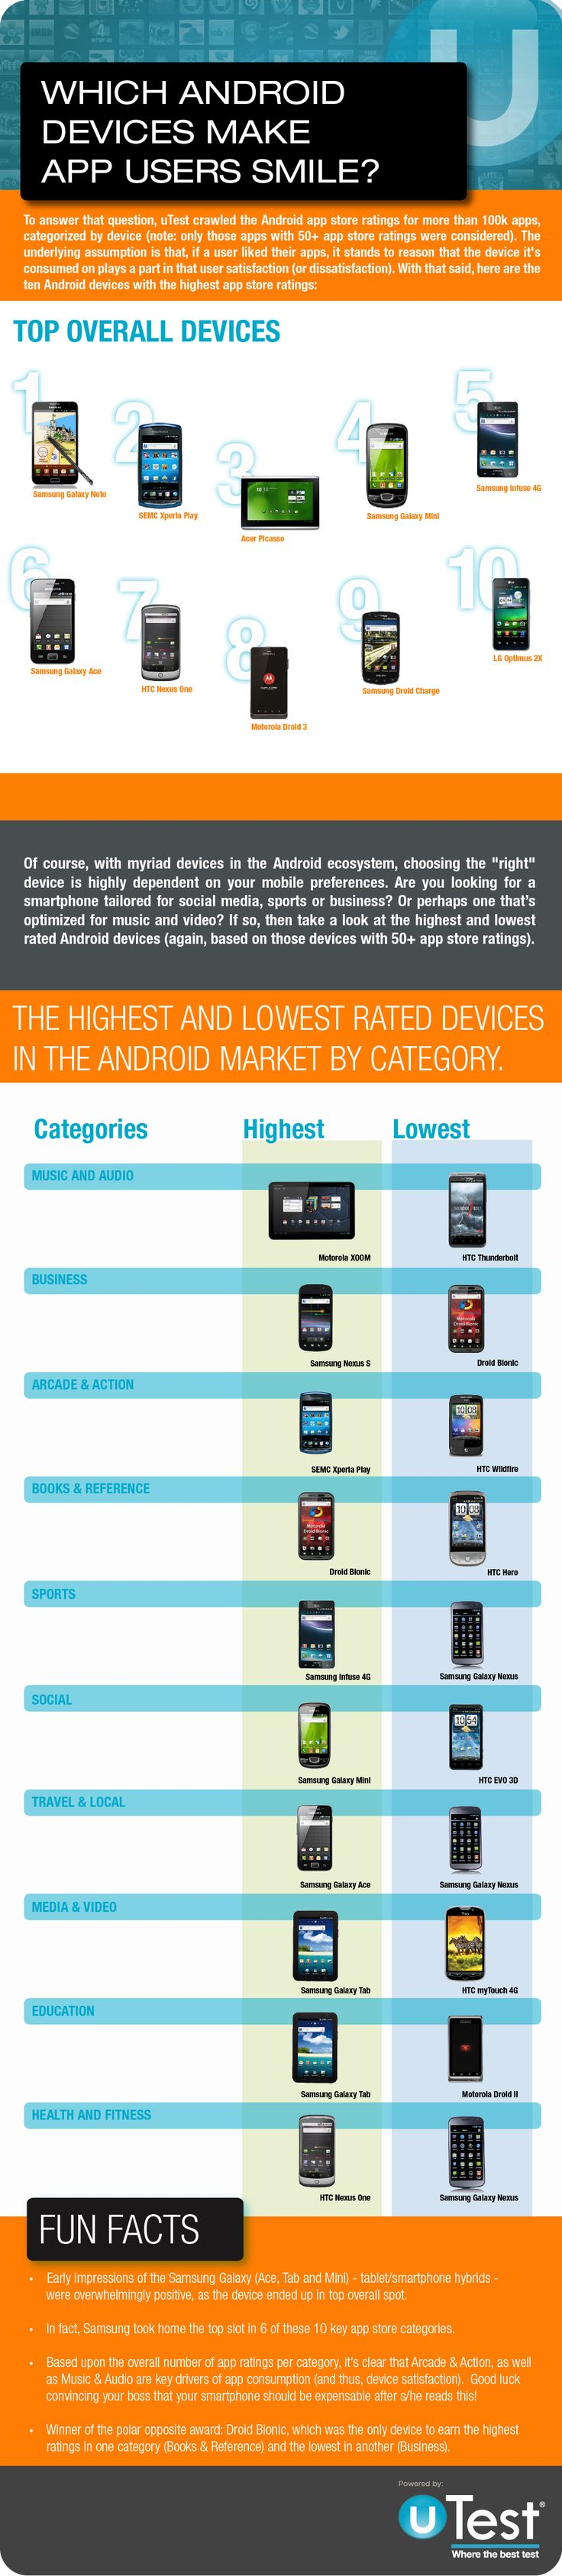 3.29.12 - uTest Infographic: Which Android Devices Make App Users Smile?